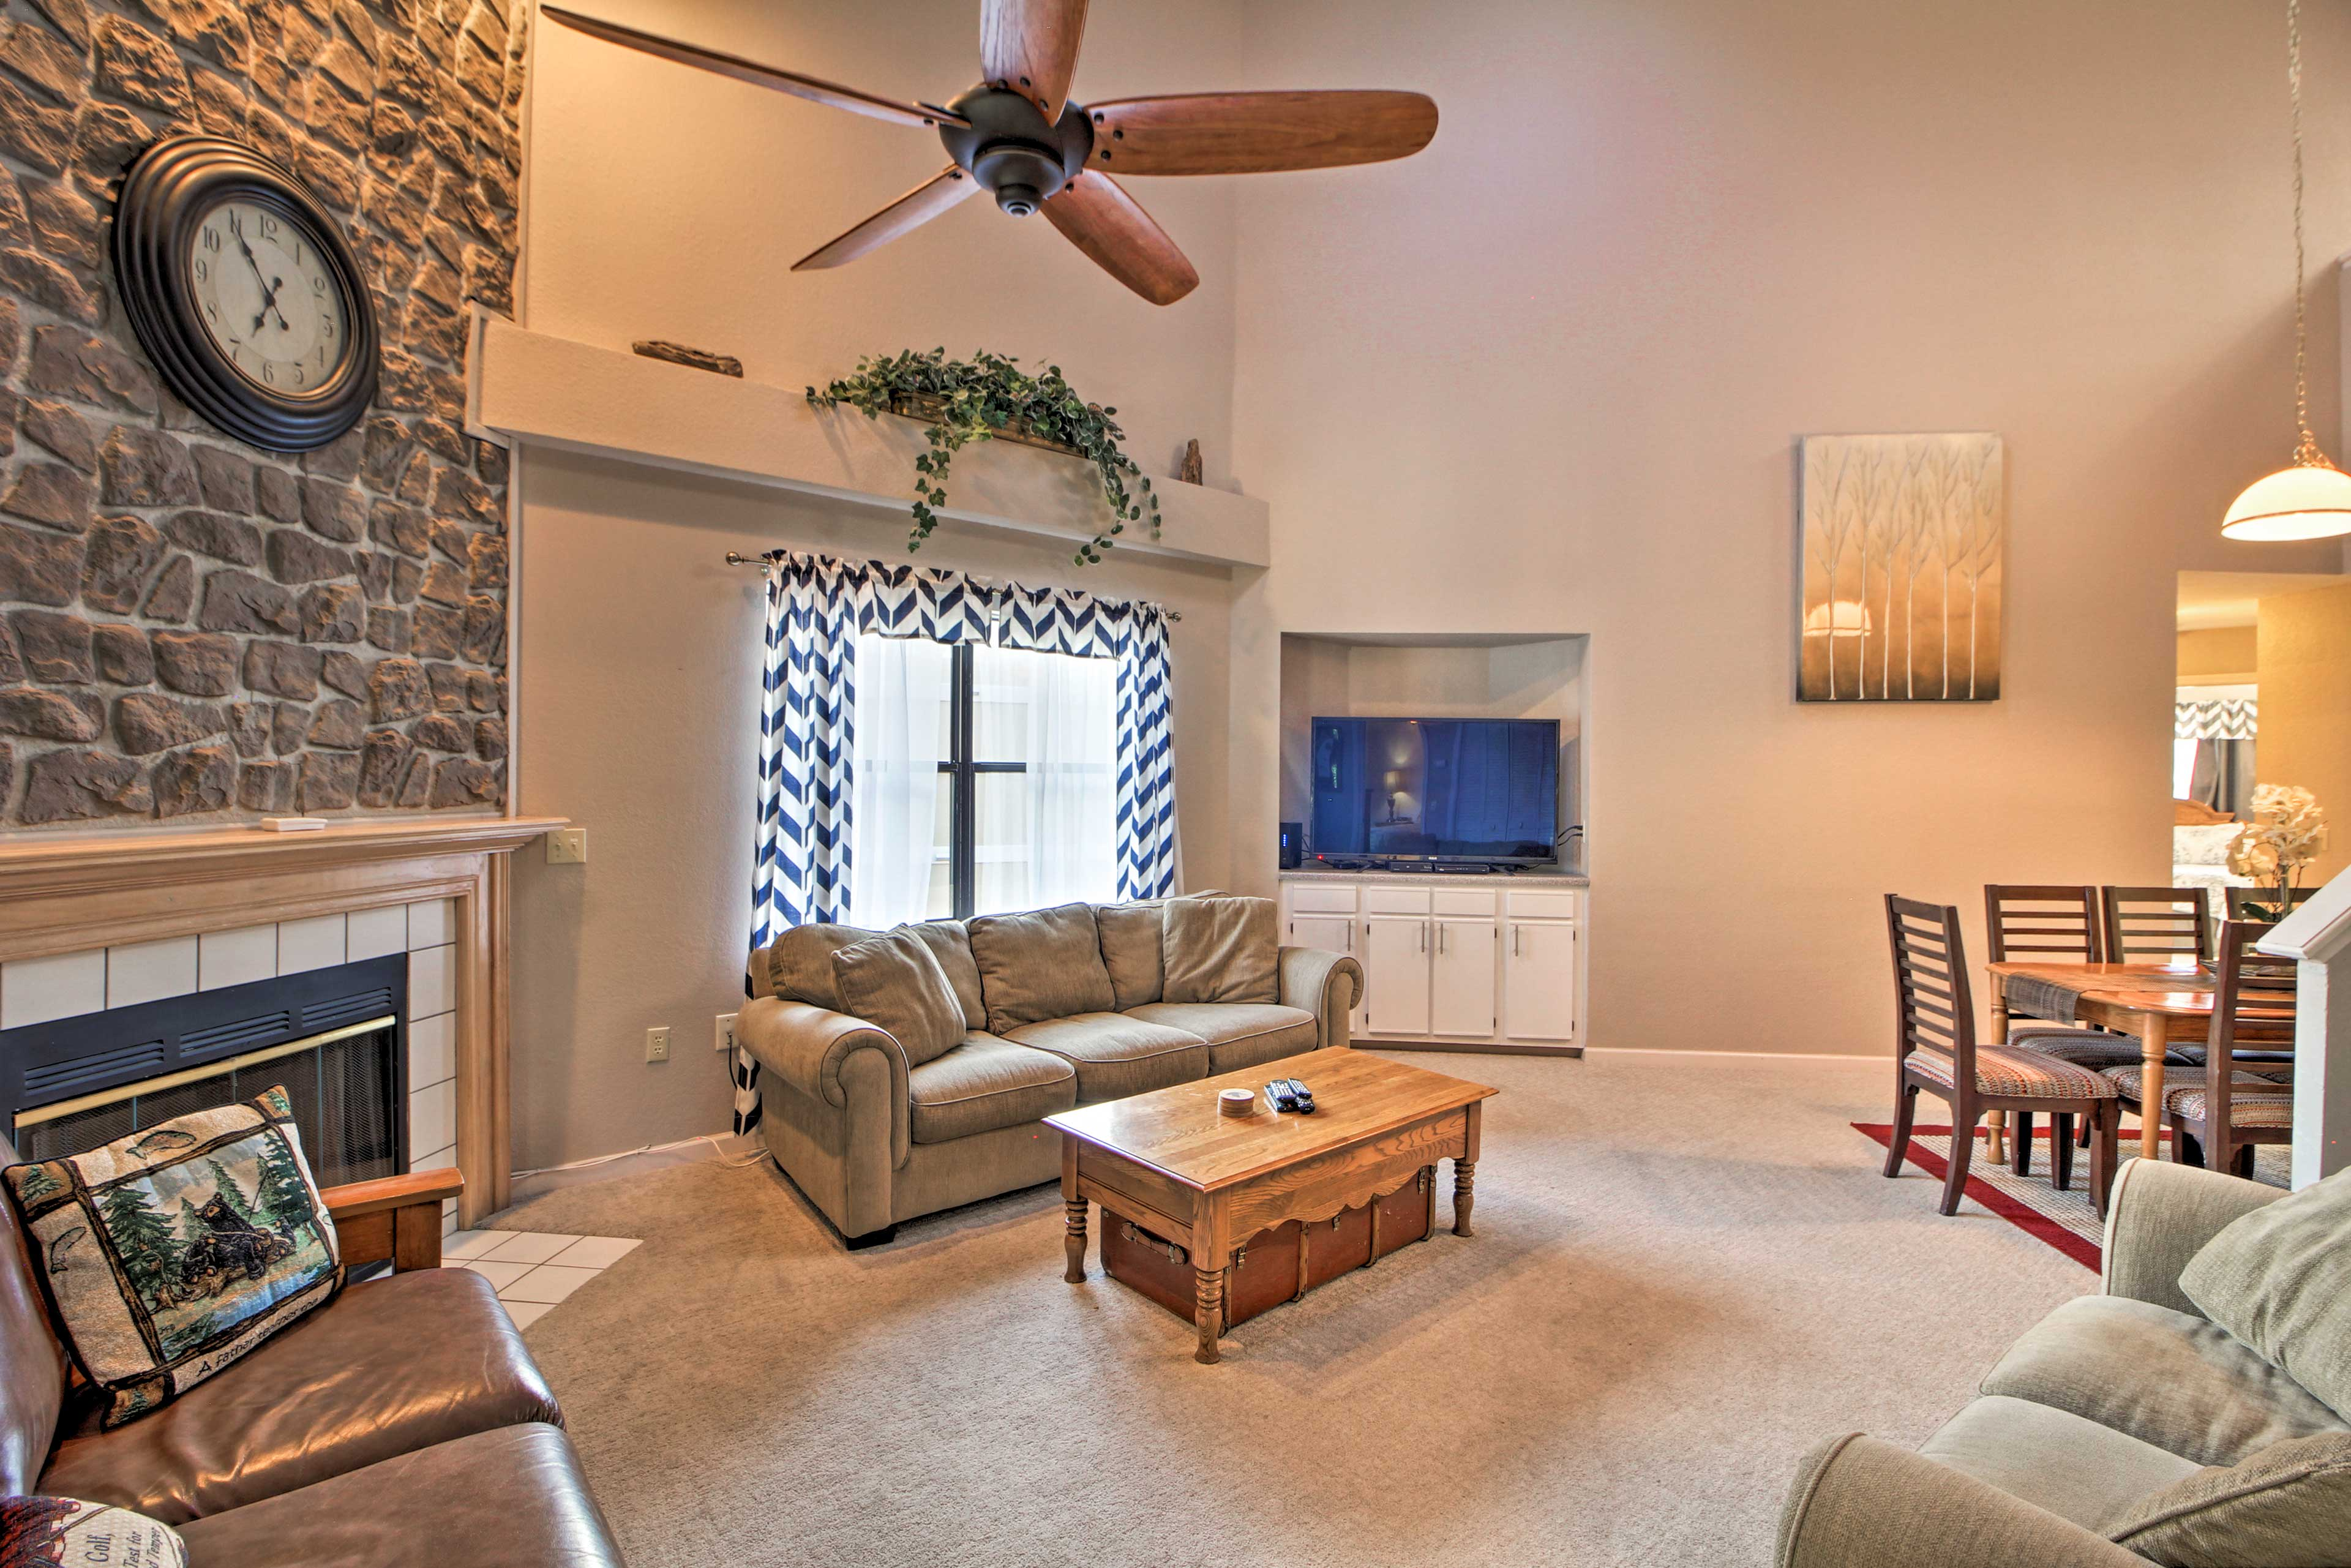 Living Room | Smart TV | Central Heating & A/C